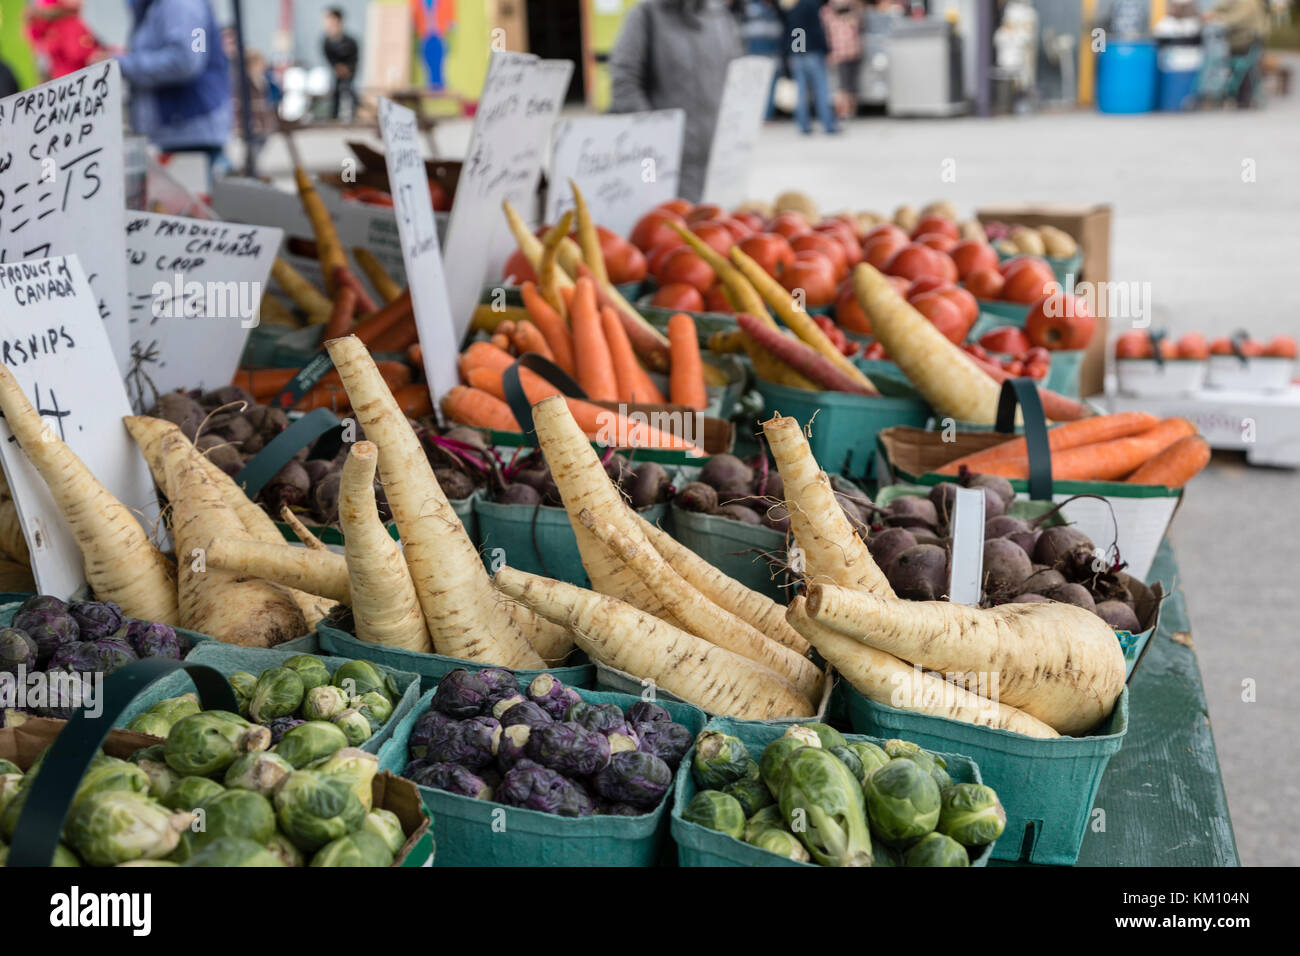 Produce including carrots, Parsnip,  table at a farmers market. - Stock Image